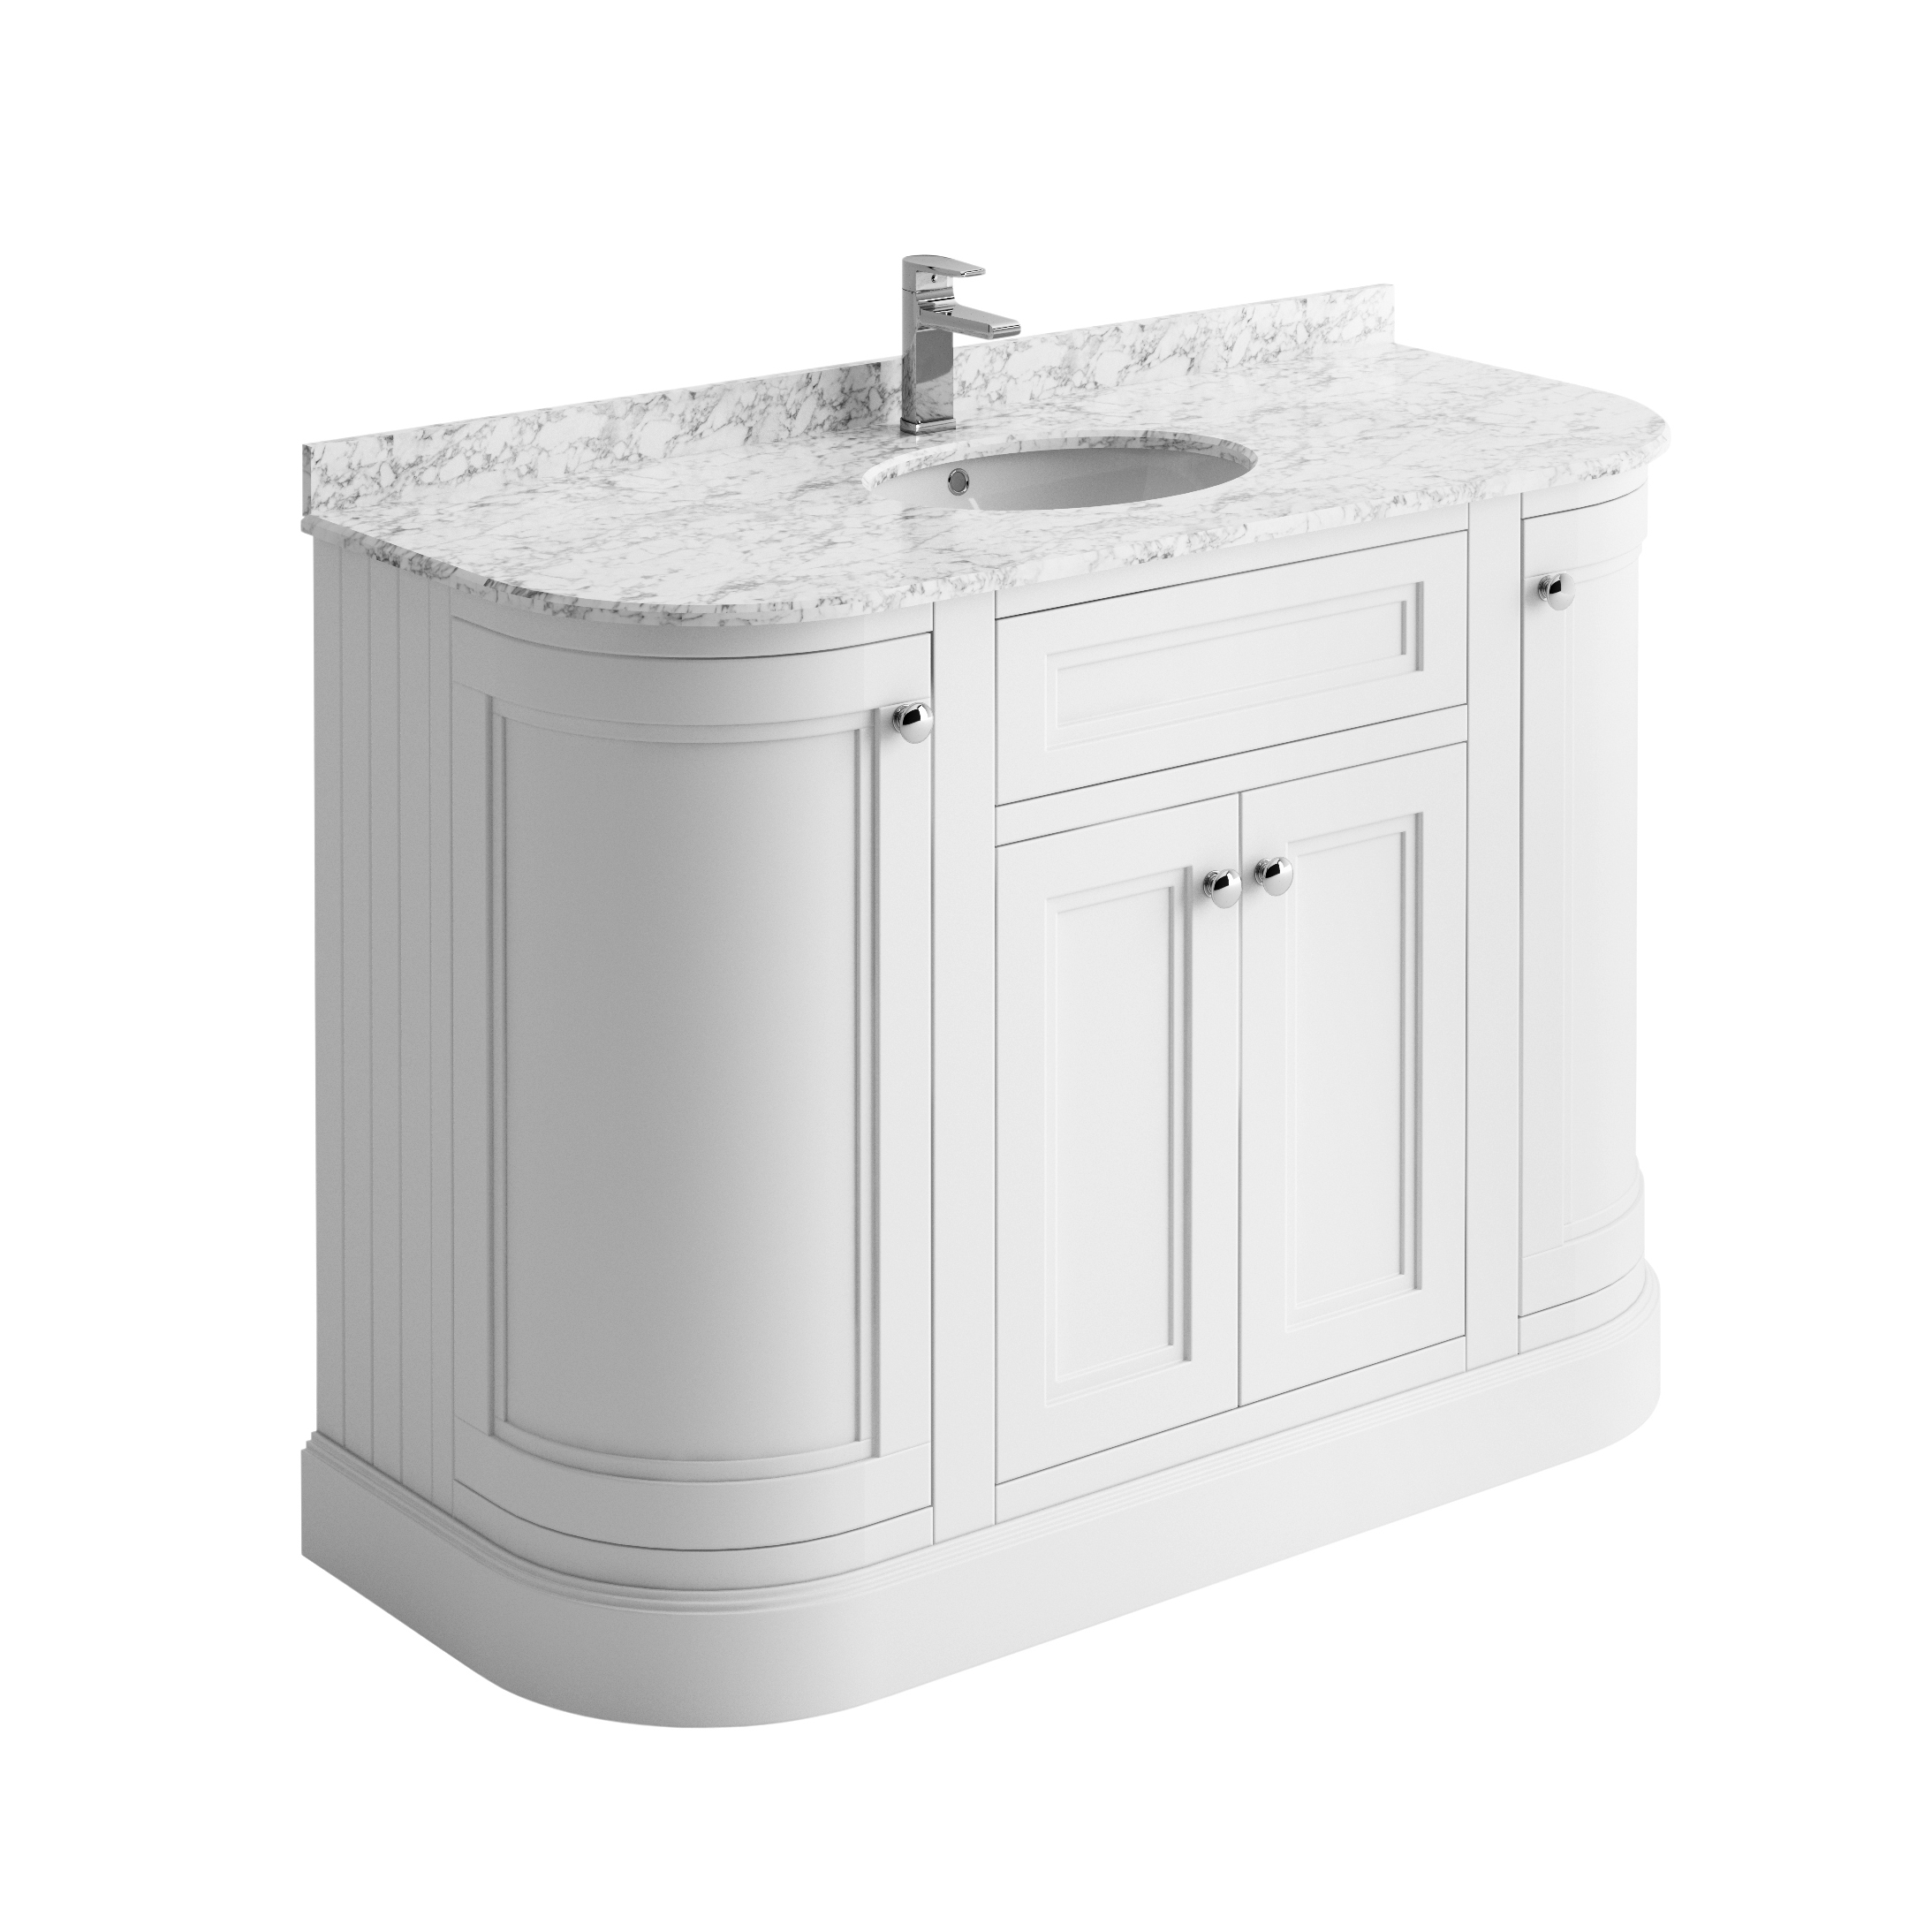 Details About Rowan Traditional White 120cm Curved Vanity Storage Unit Ceramic Sink Marble Top intended for sizing 2187 X 2187